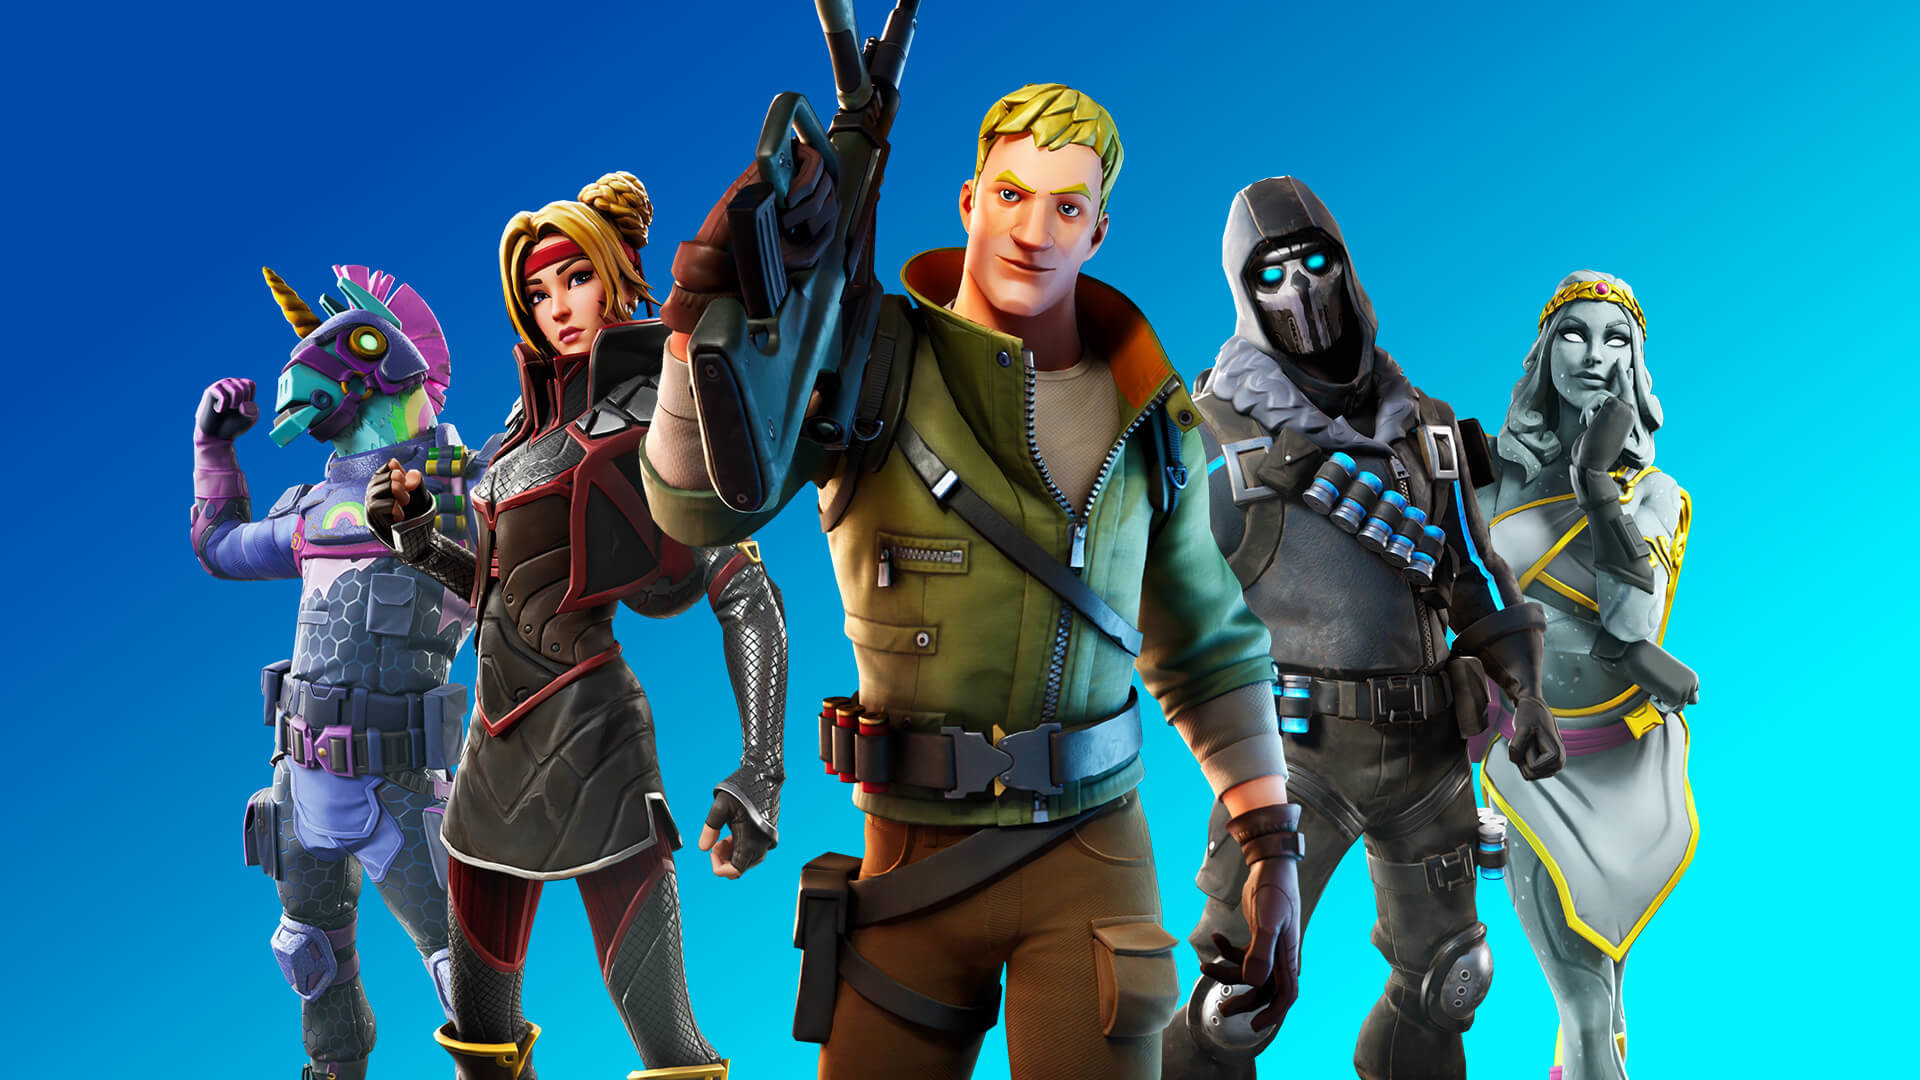 Movie Fortnite Fortnite Is Hosting A Christopher Nolan Movie Night This Friday Neowin